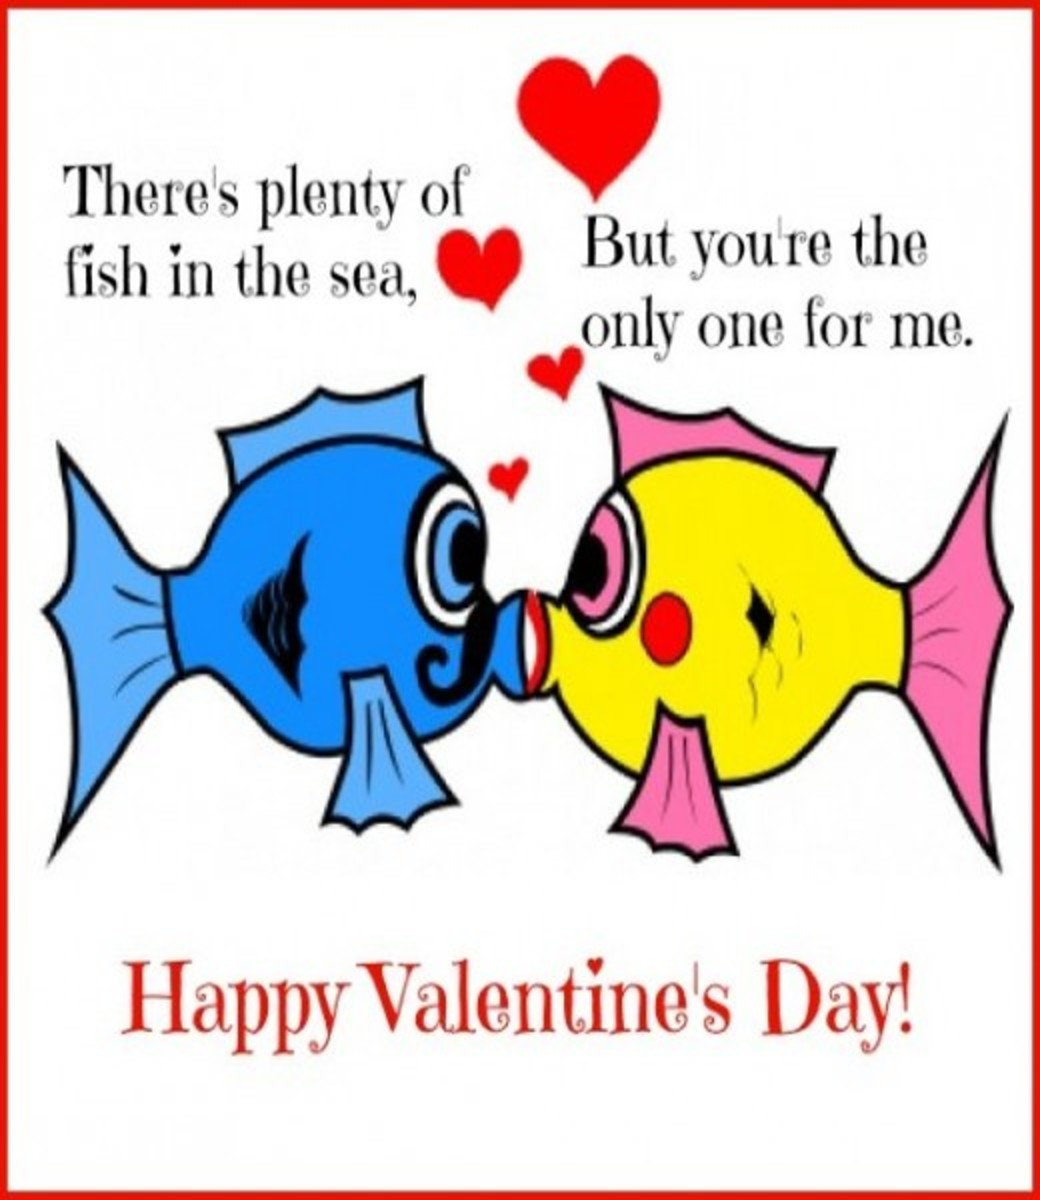 Kissing Fish Valentine's Day Card